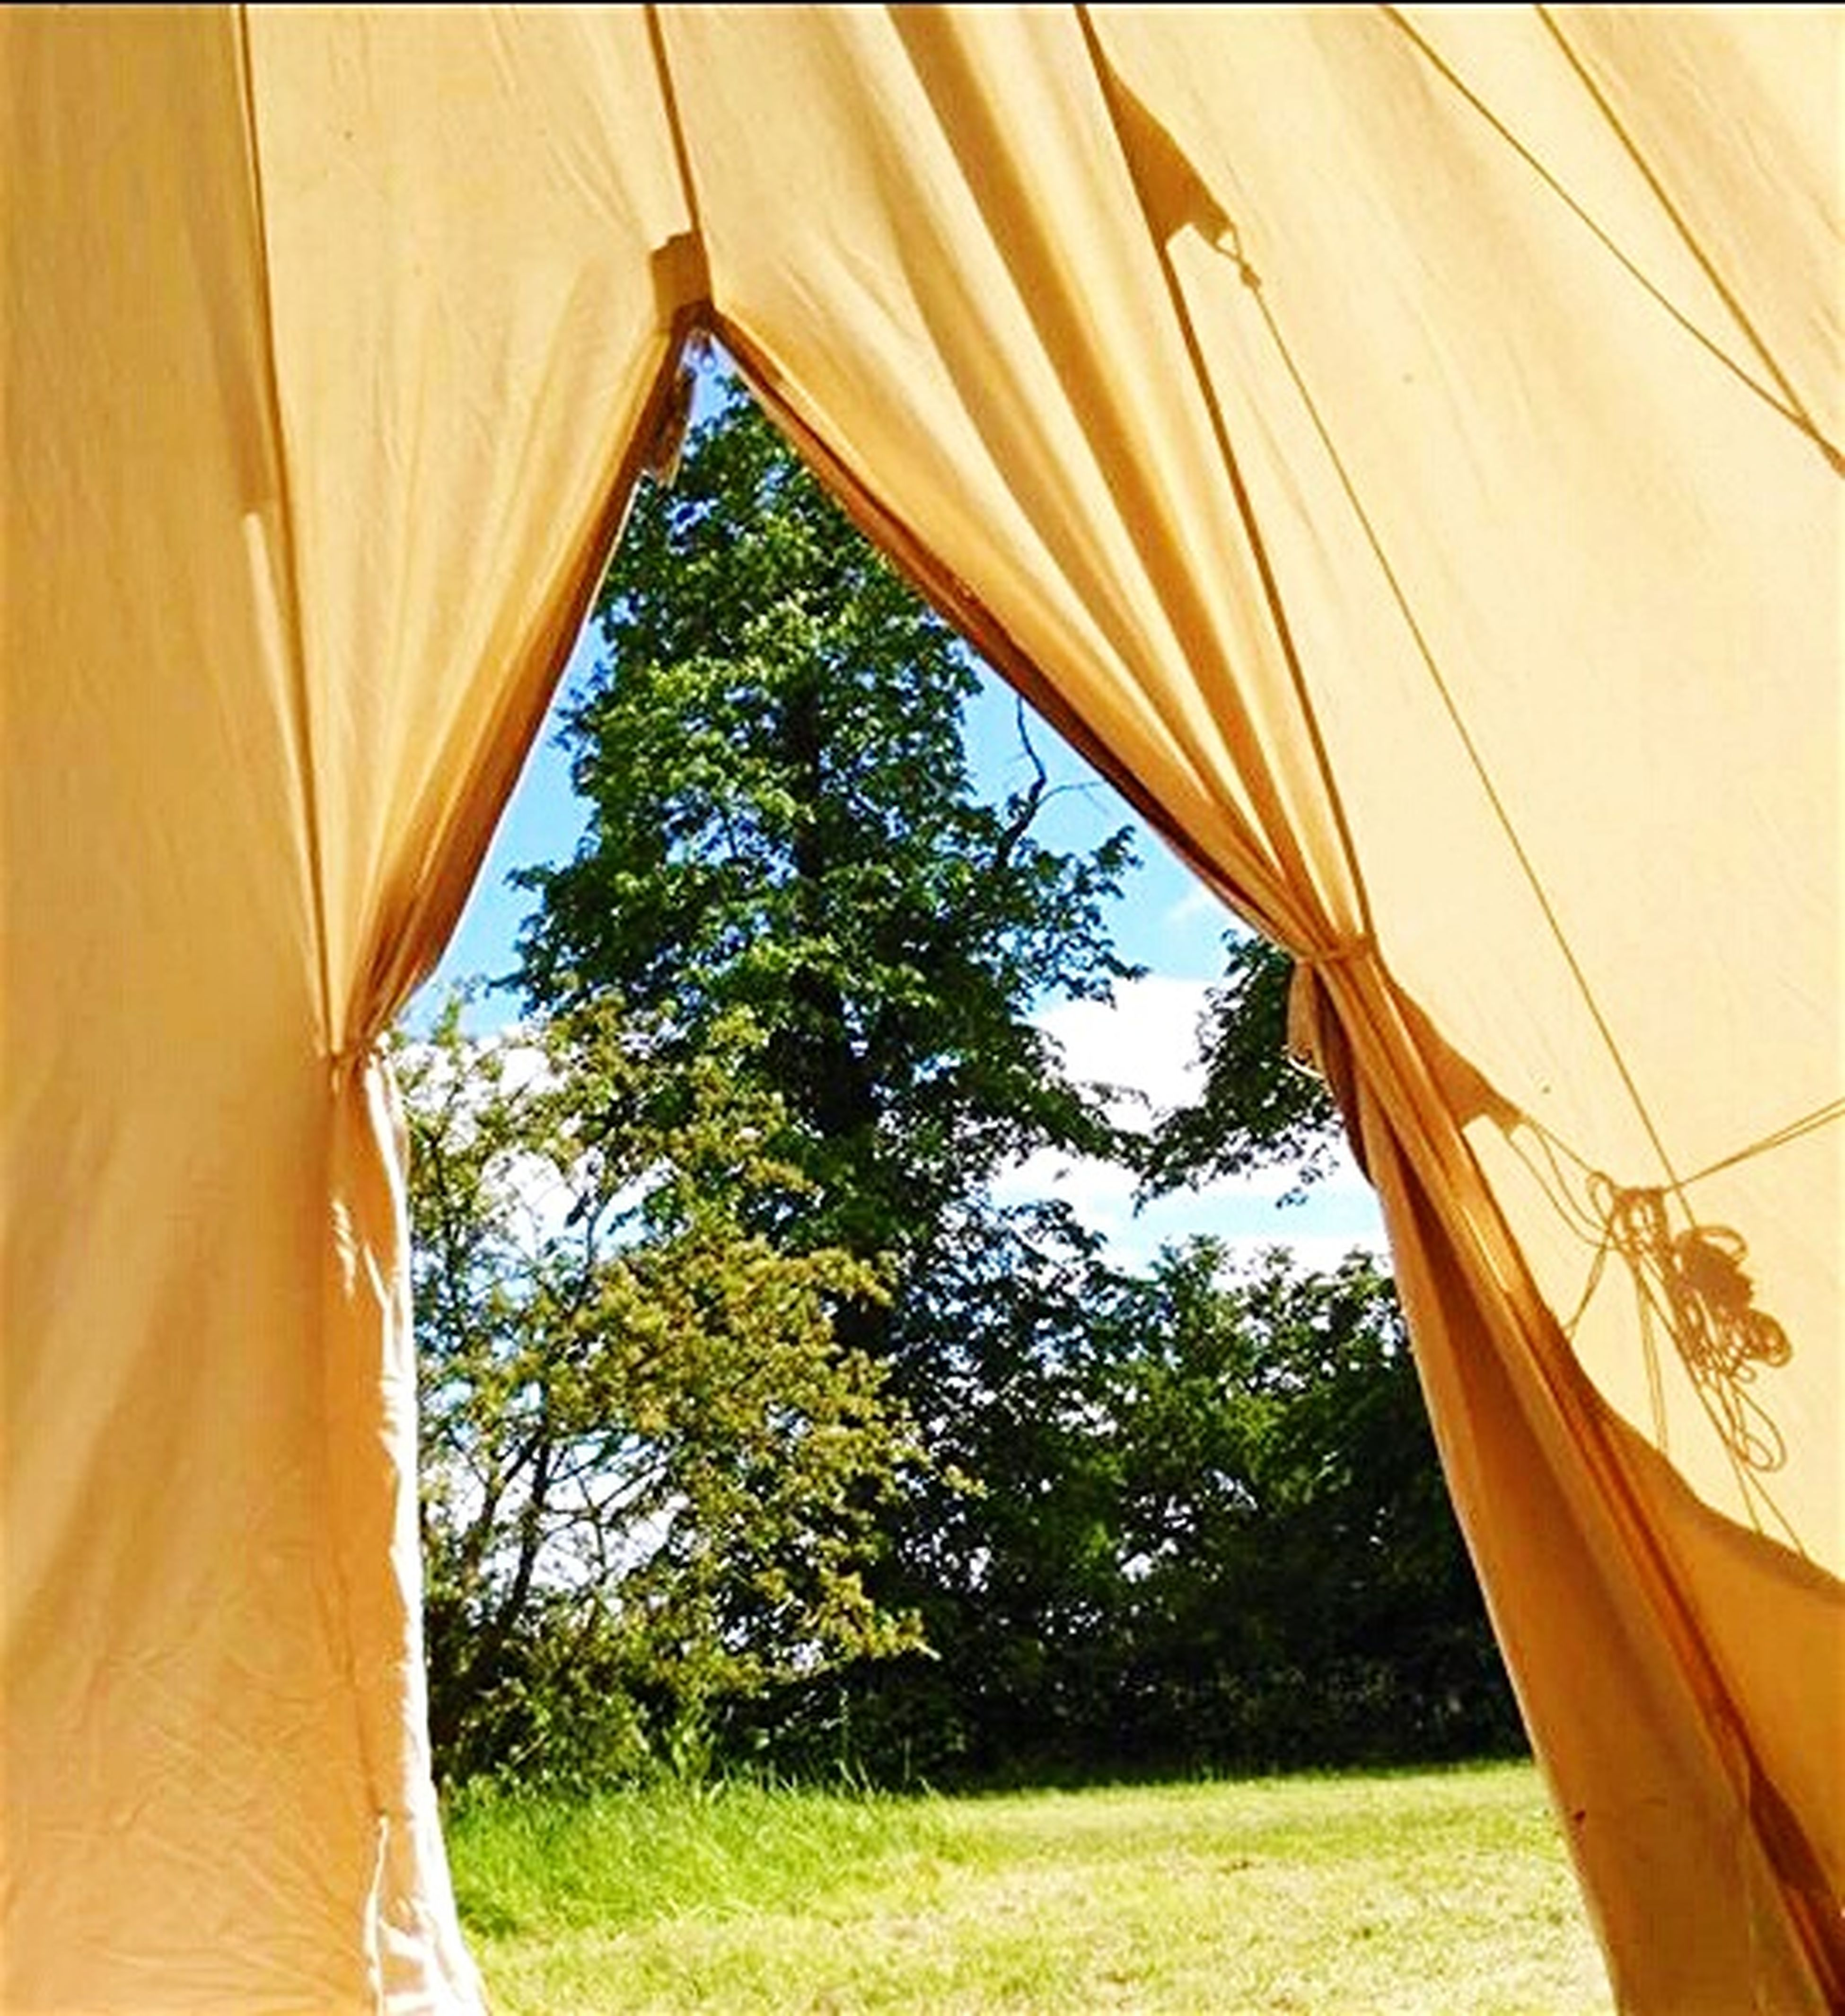 Looking Out Of The Bell Tent! Bell Tent Nature Trees Field Grass Sky Aldenham Park London